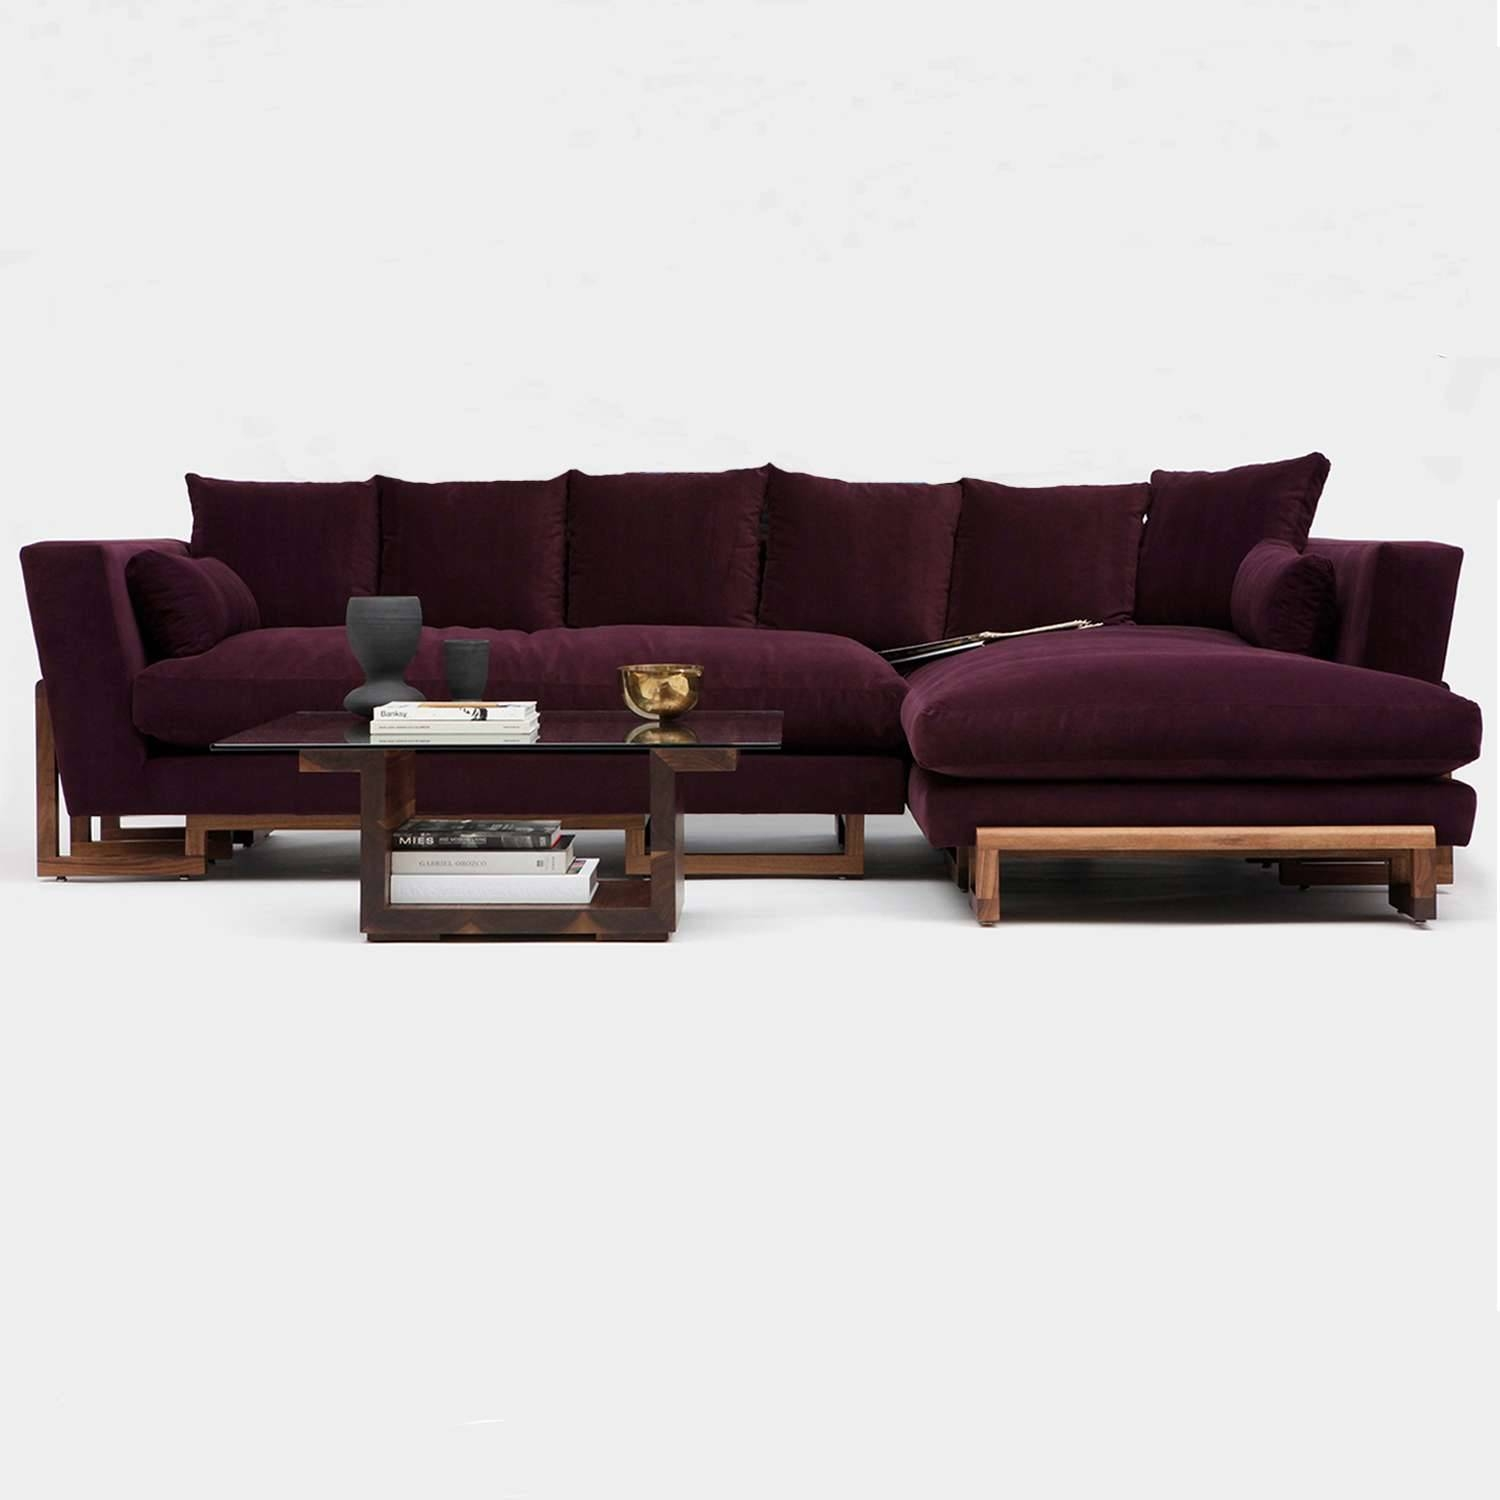 Lrg Sectional Sofaartless | Yliving with regard to Eggplant Sectional Sofa (Image 18 of 30)